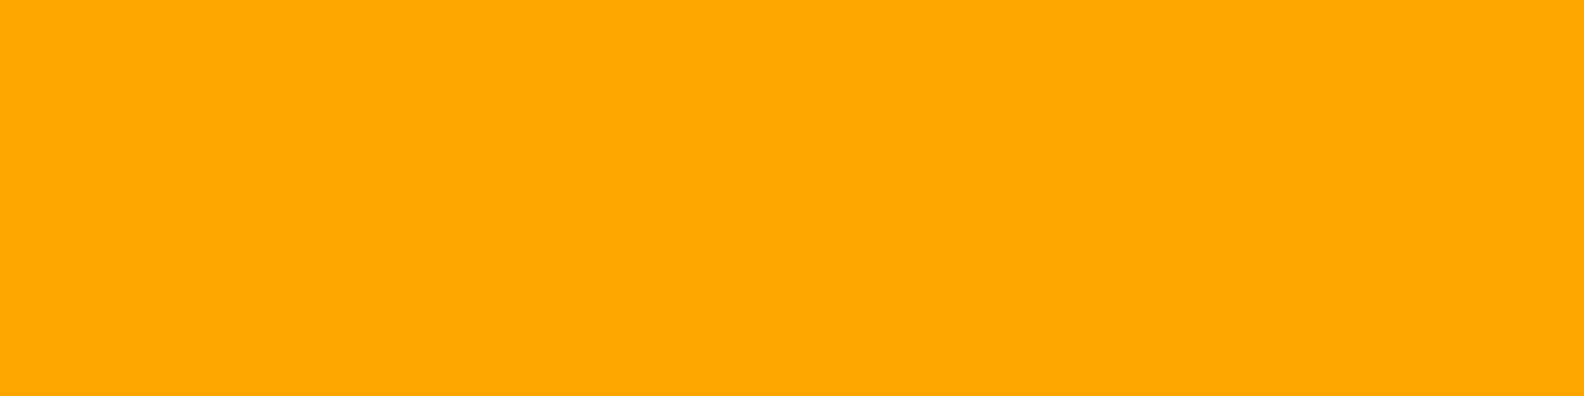 1584x396 Orange Web Solid Color Background